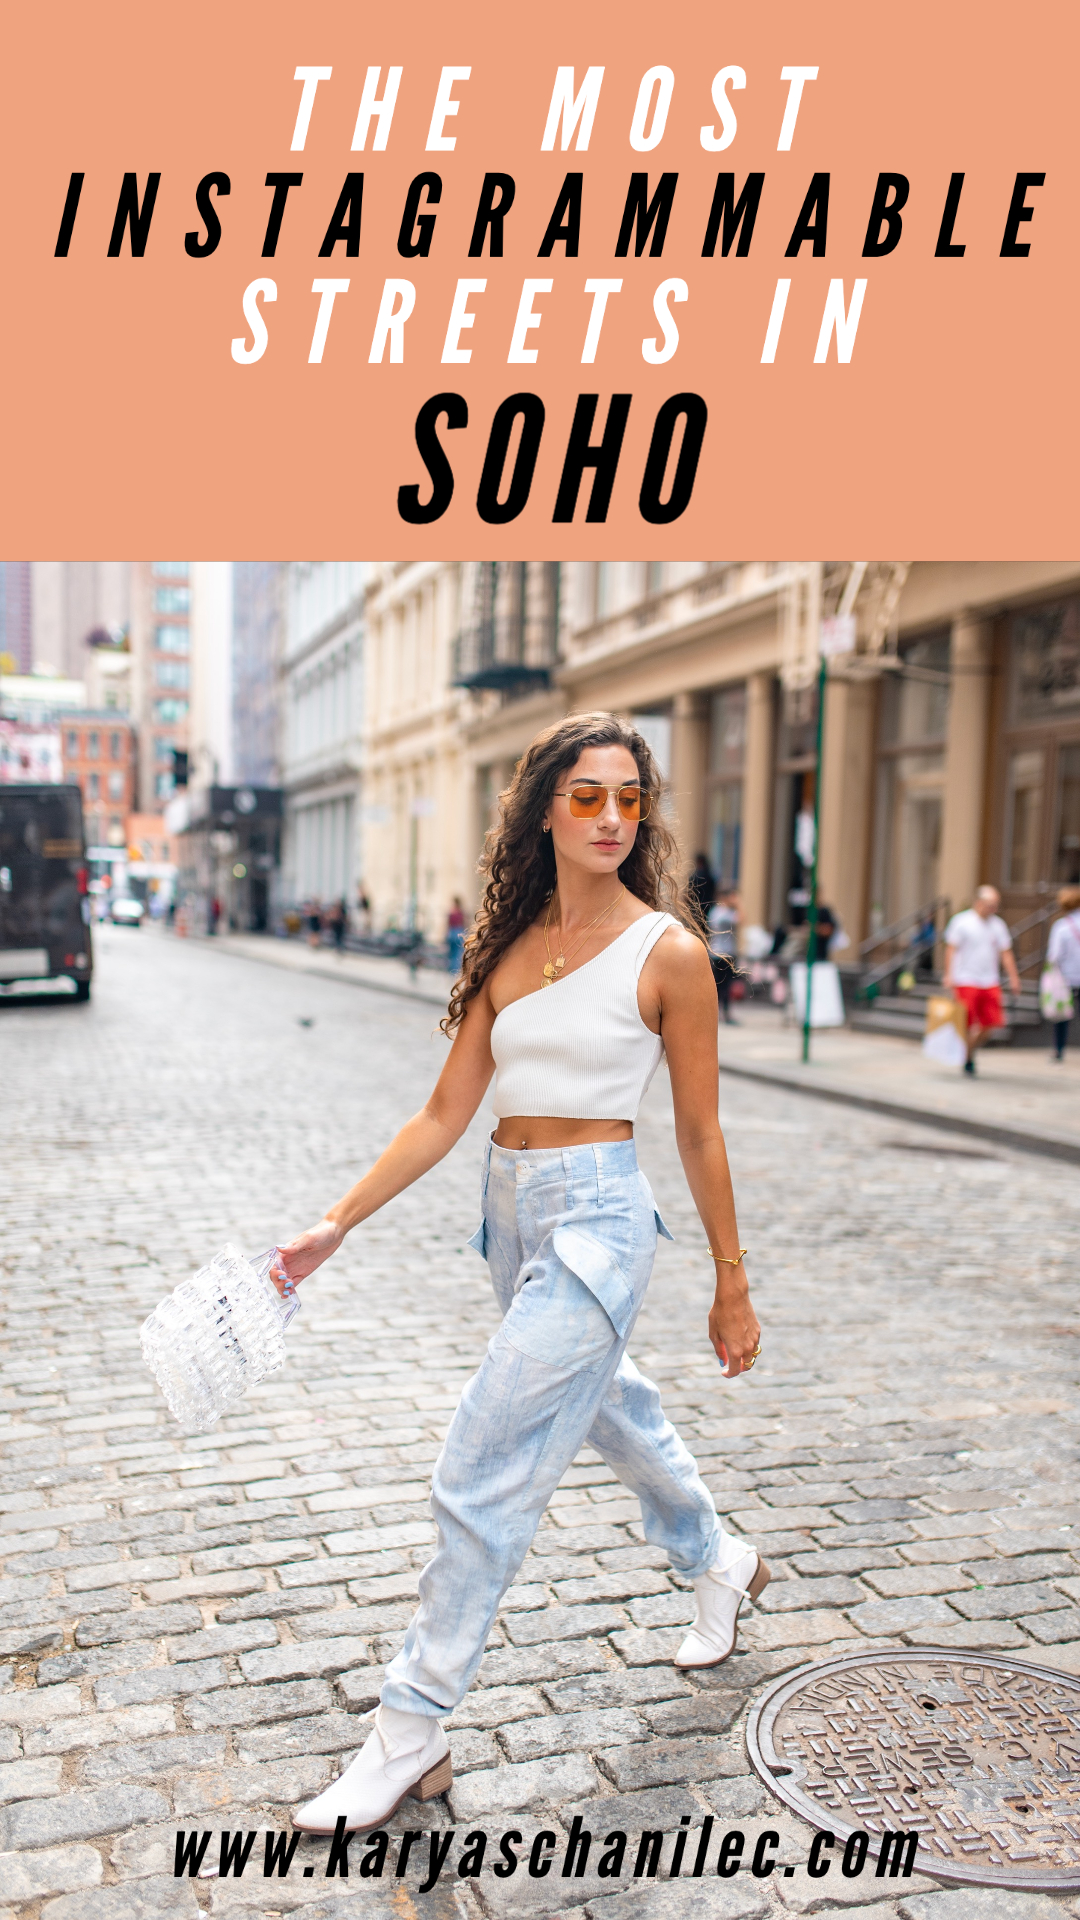 The Most Instagrammable Streets in SoHo NYC